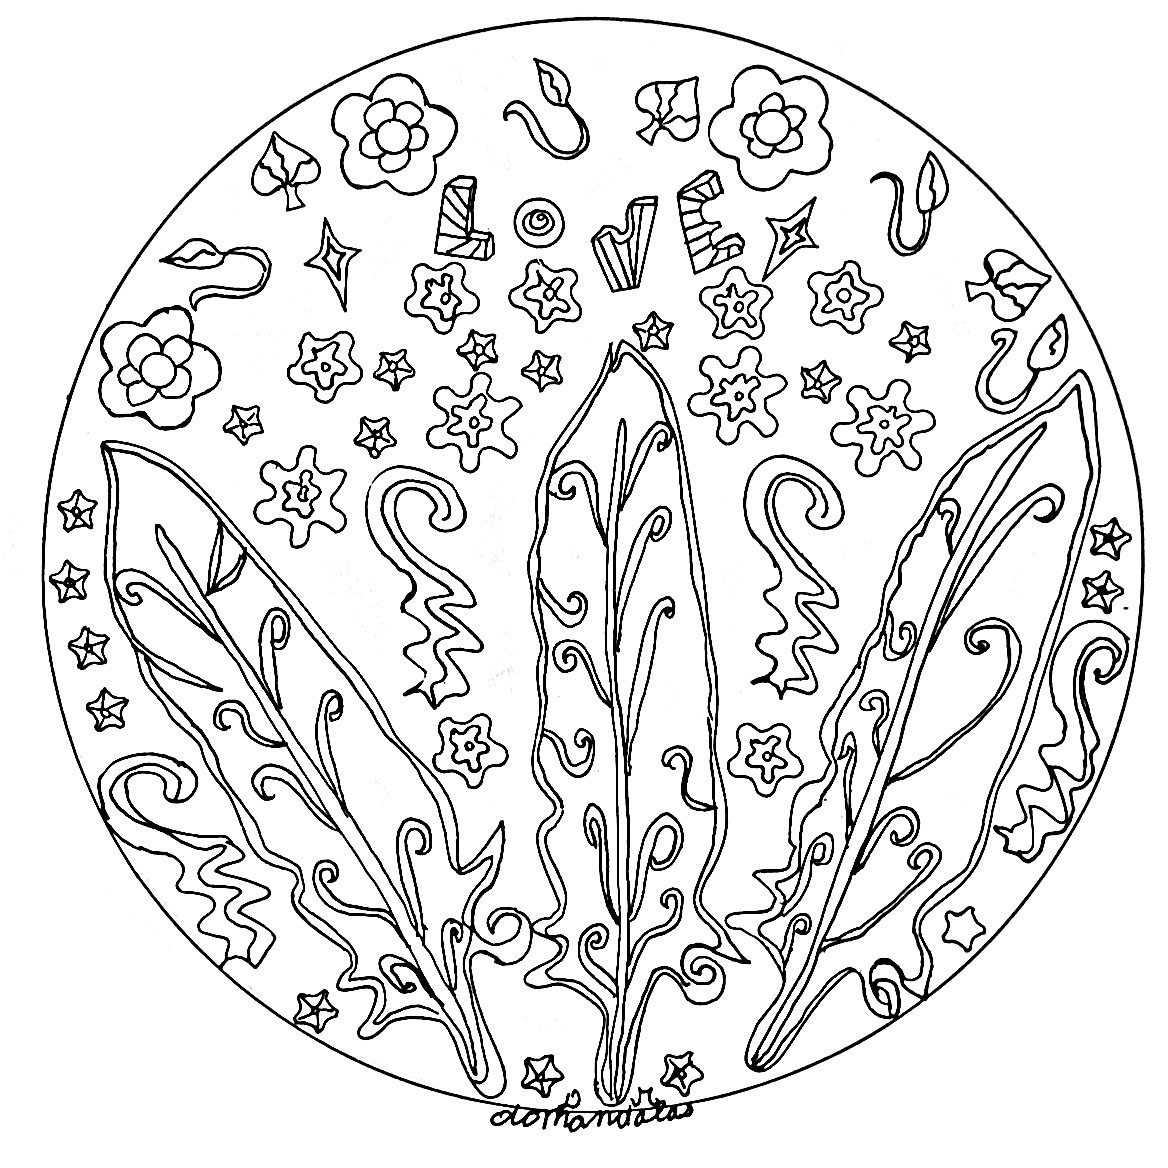 Details relatively easy to color, for a Mandala coloring page very original and of high quality. Feel free to let your instincts decide where to color, and what colors to choose.